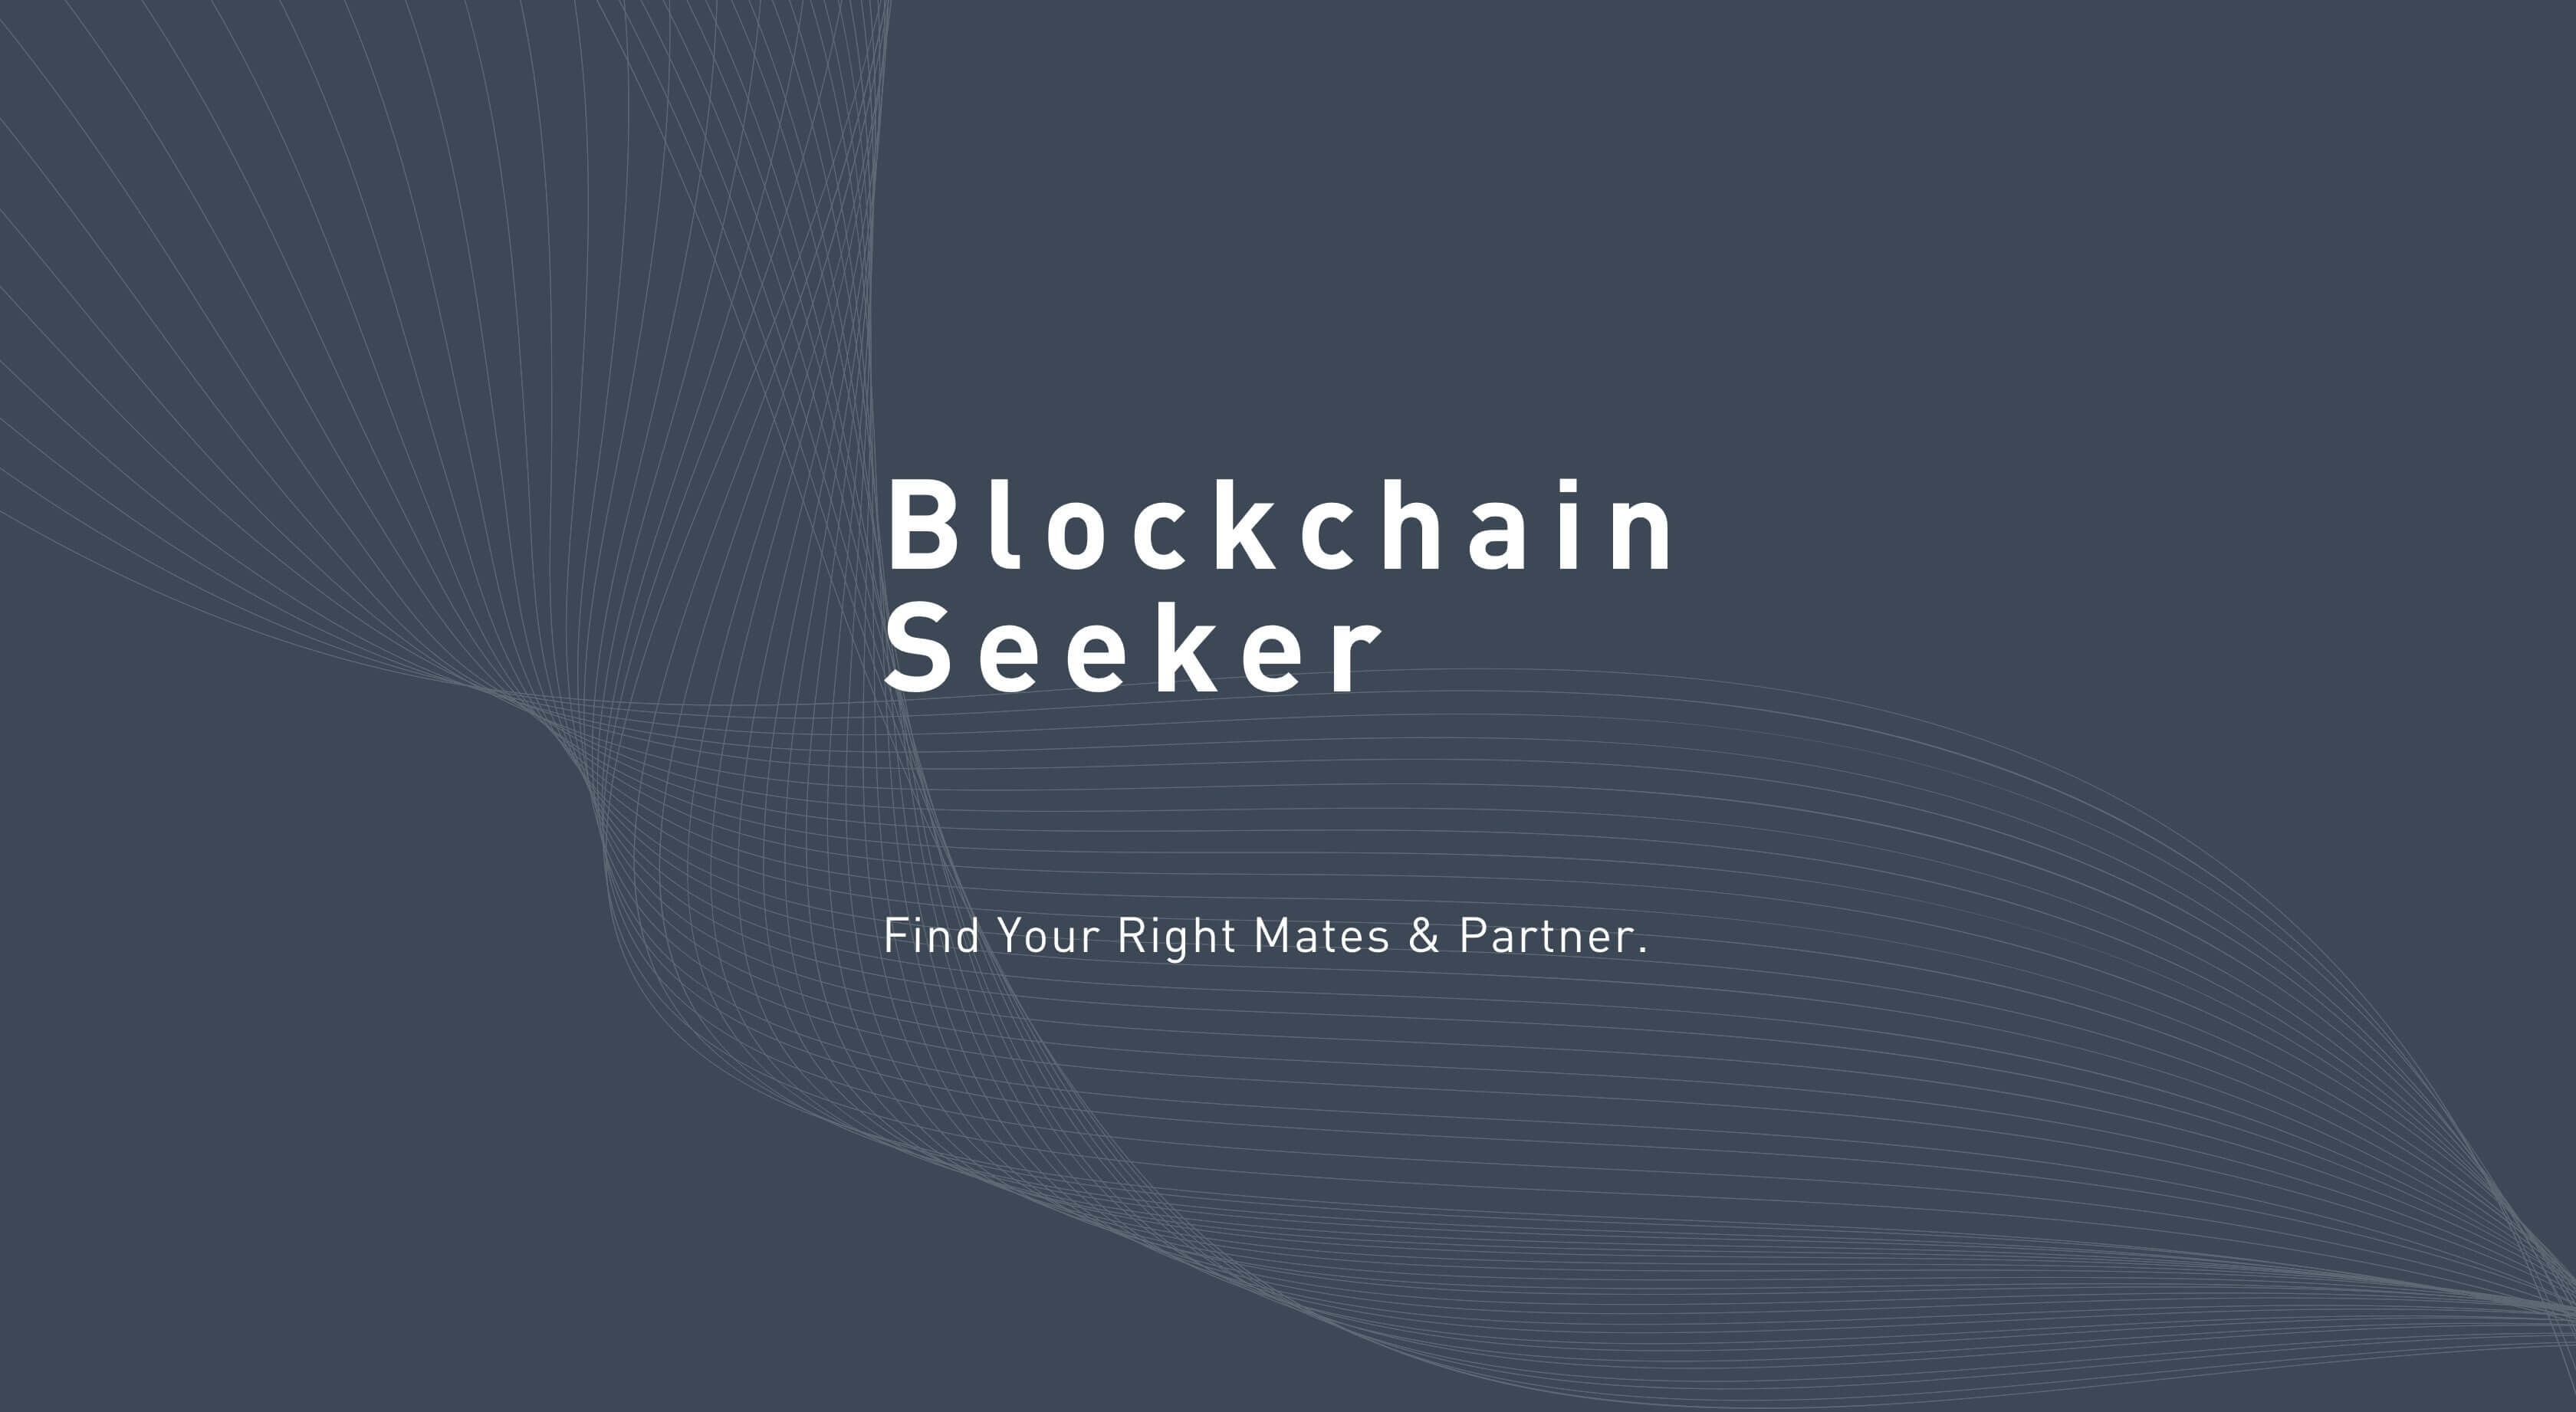 Blockchain Seeker Find Your Right Mates & Partner.